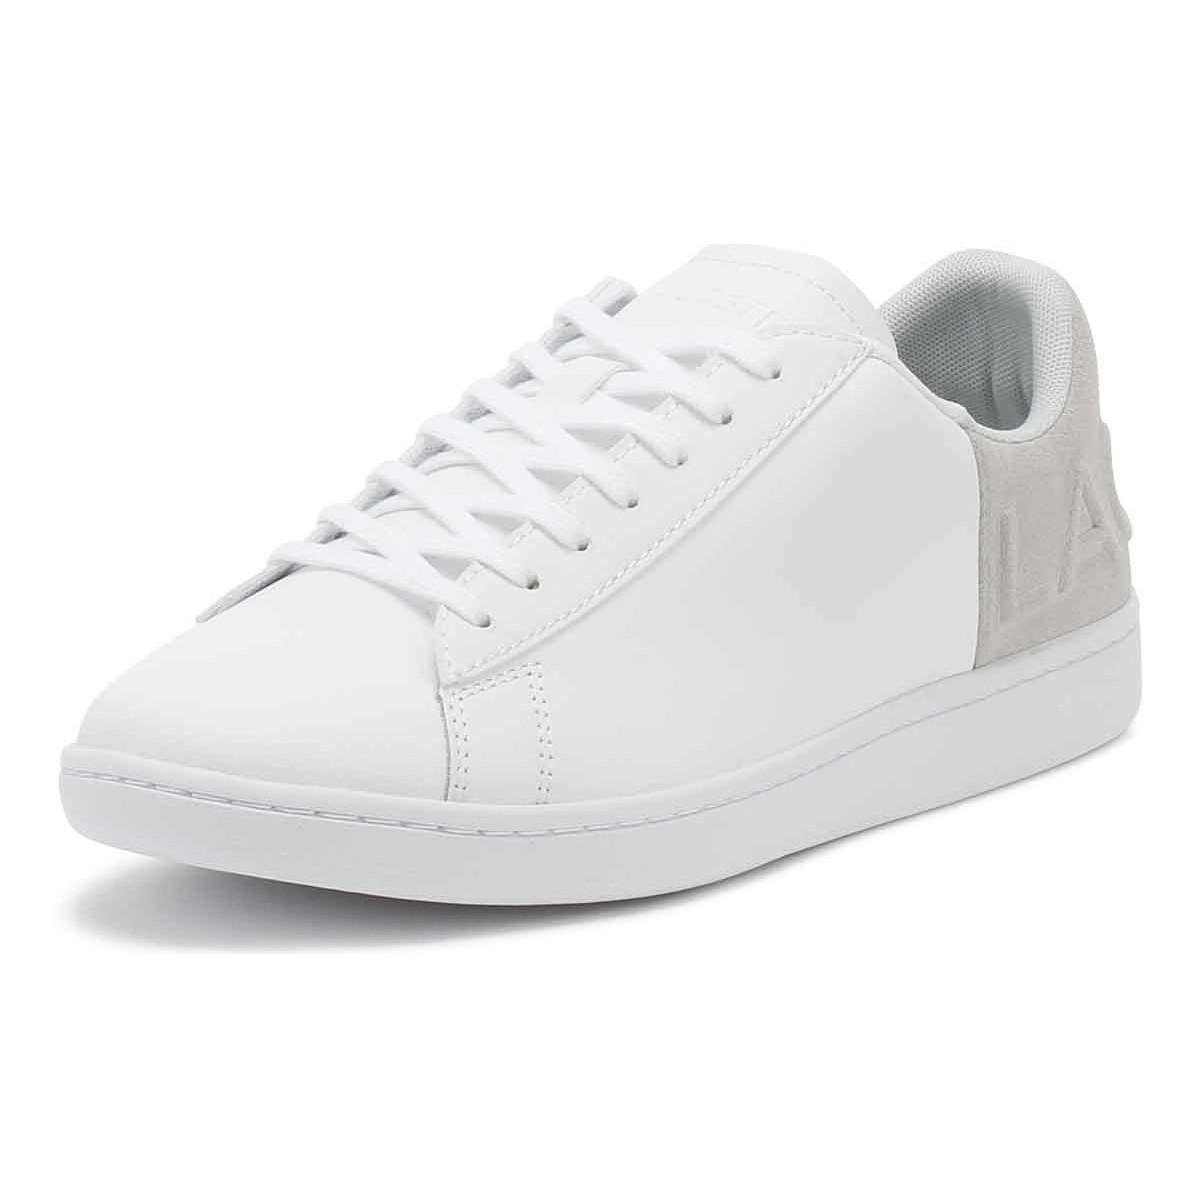 b2fbecead3afc7 Lacoste - Mens White   Light Grey Carnaby Evo 318 6 Trainers Men s Shoes ( trainers. View fullscreen